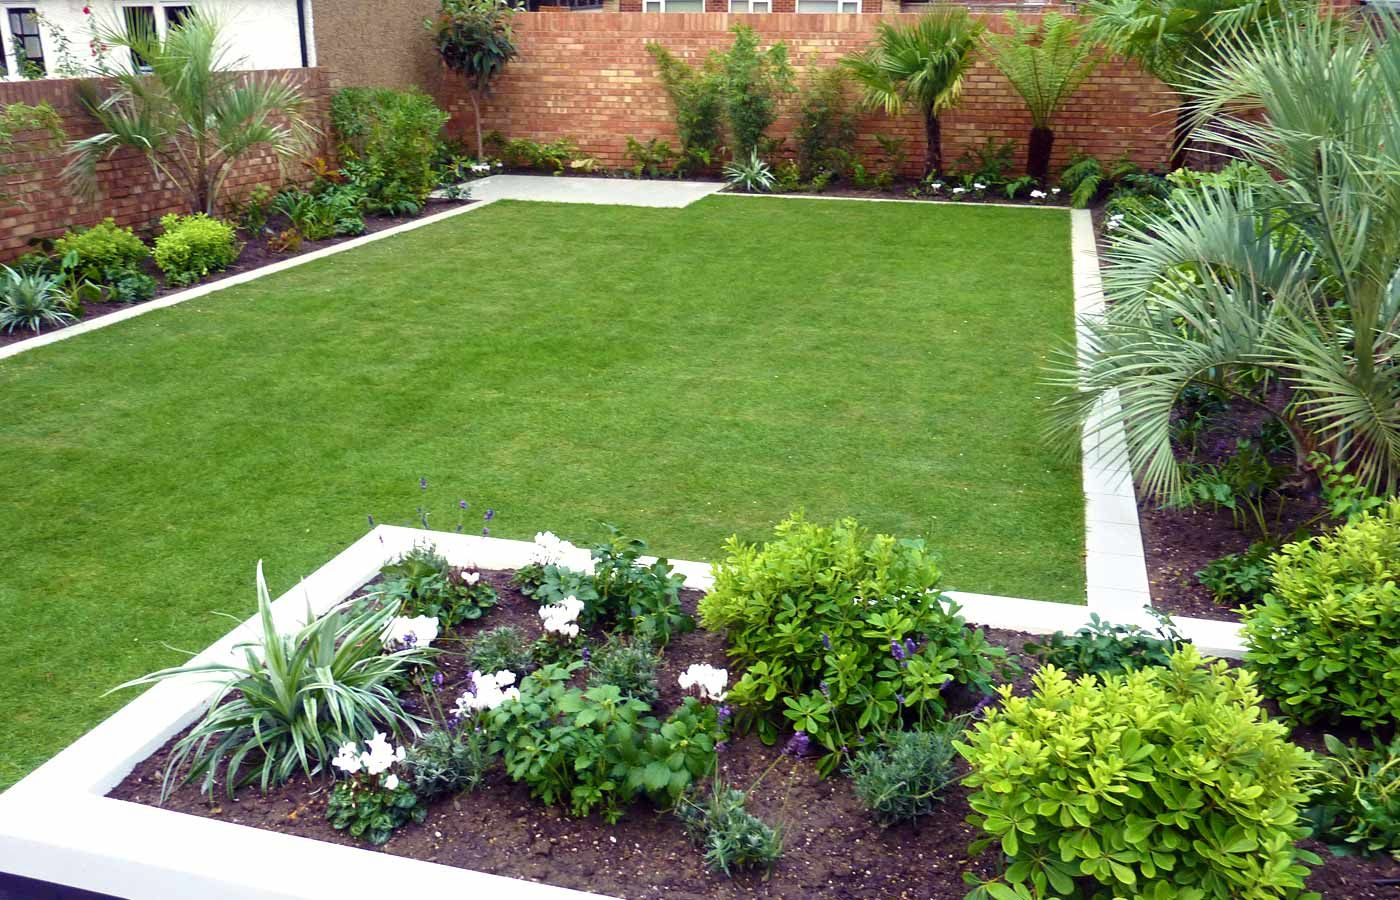 Medium sized backyard landscape ideas with grass and bamboo ideas simple backyard - Landscape design for small backyards ...